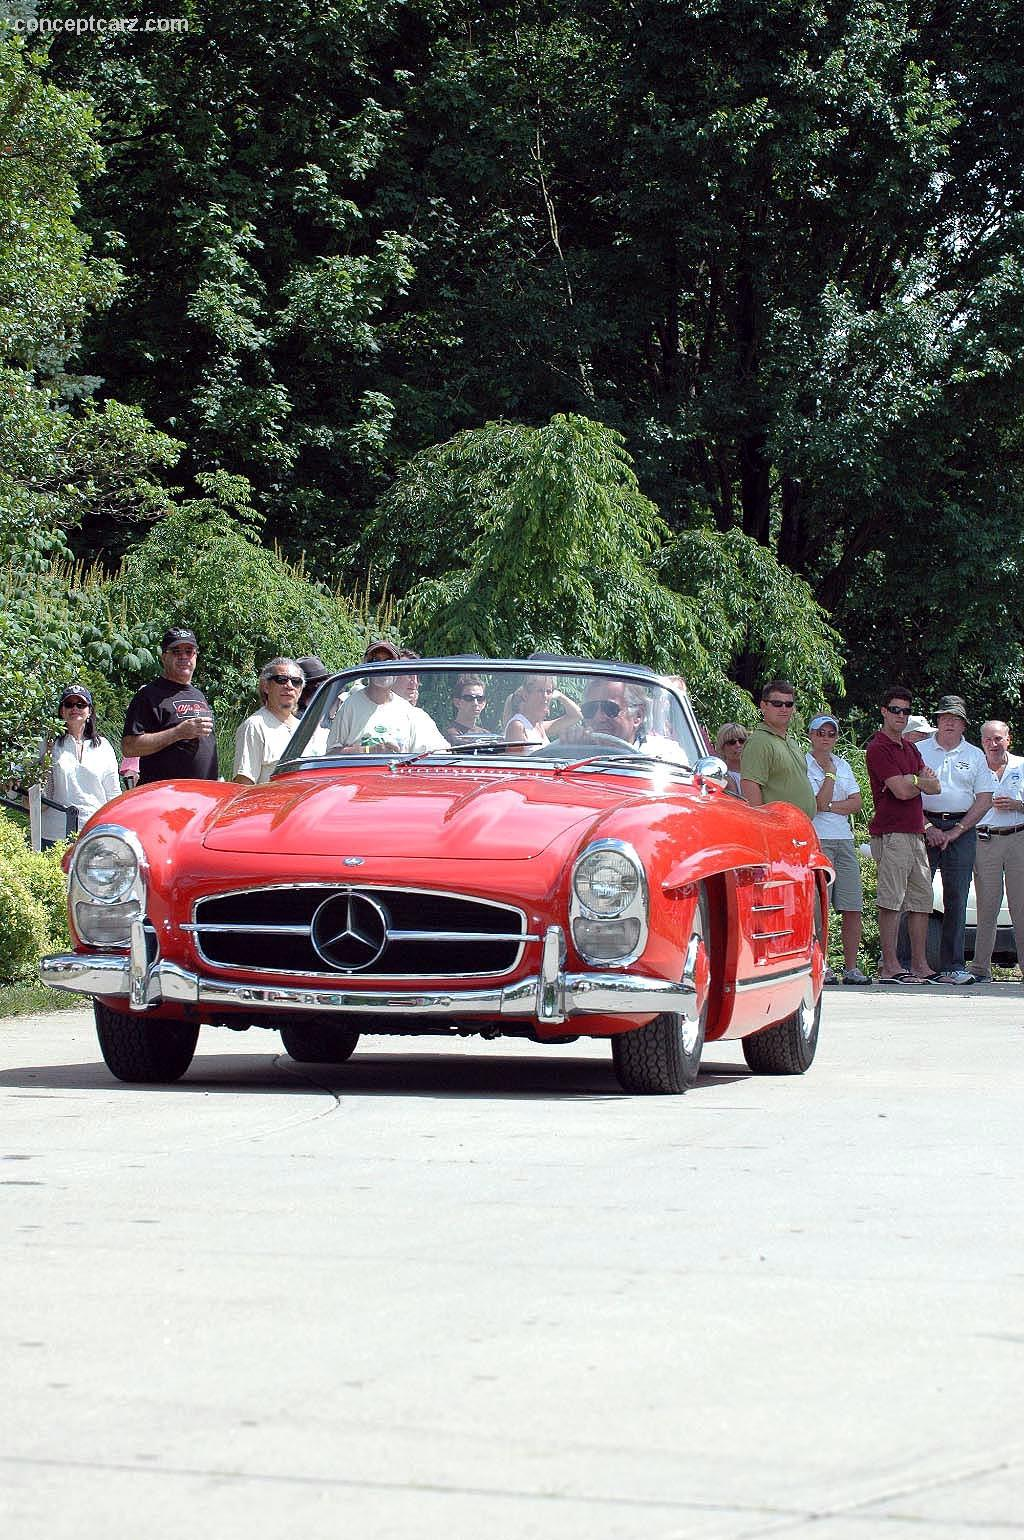 1960 mercedes benz 300 sl at the ault park concours d 39 elegance for 1960 mercedes benz